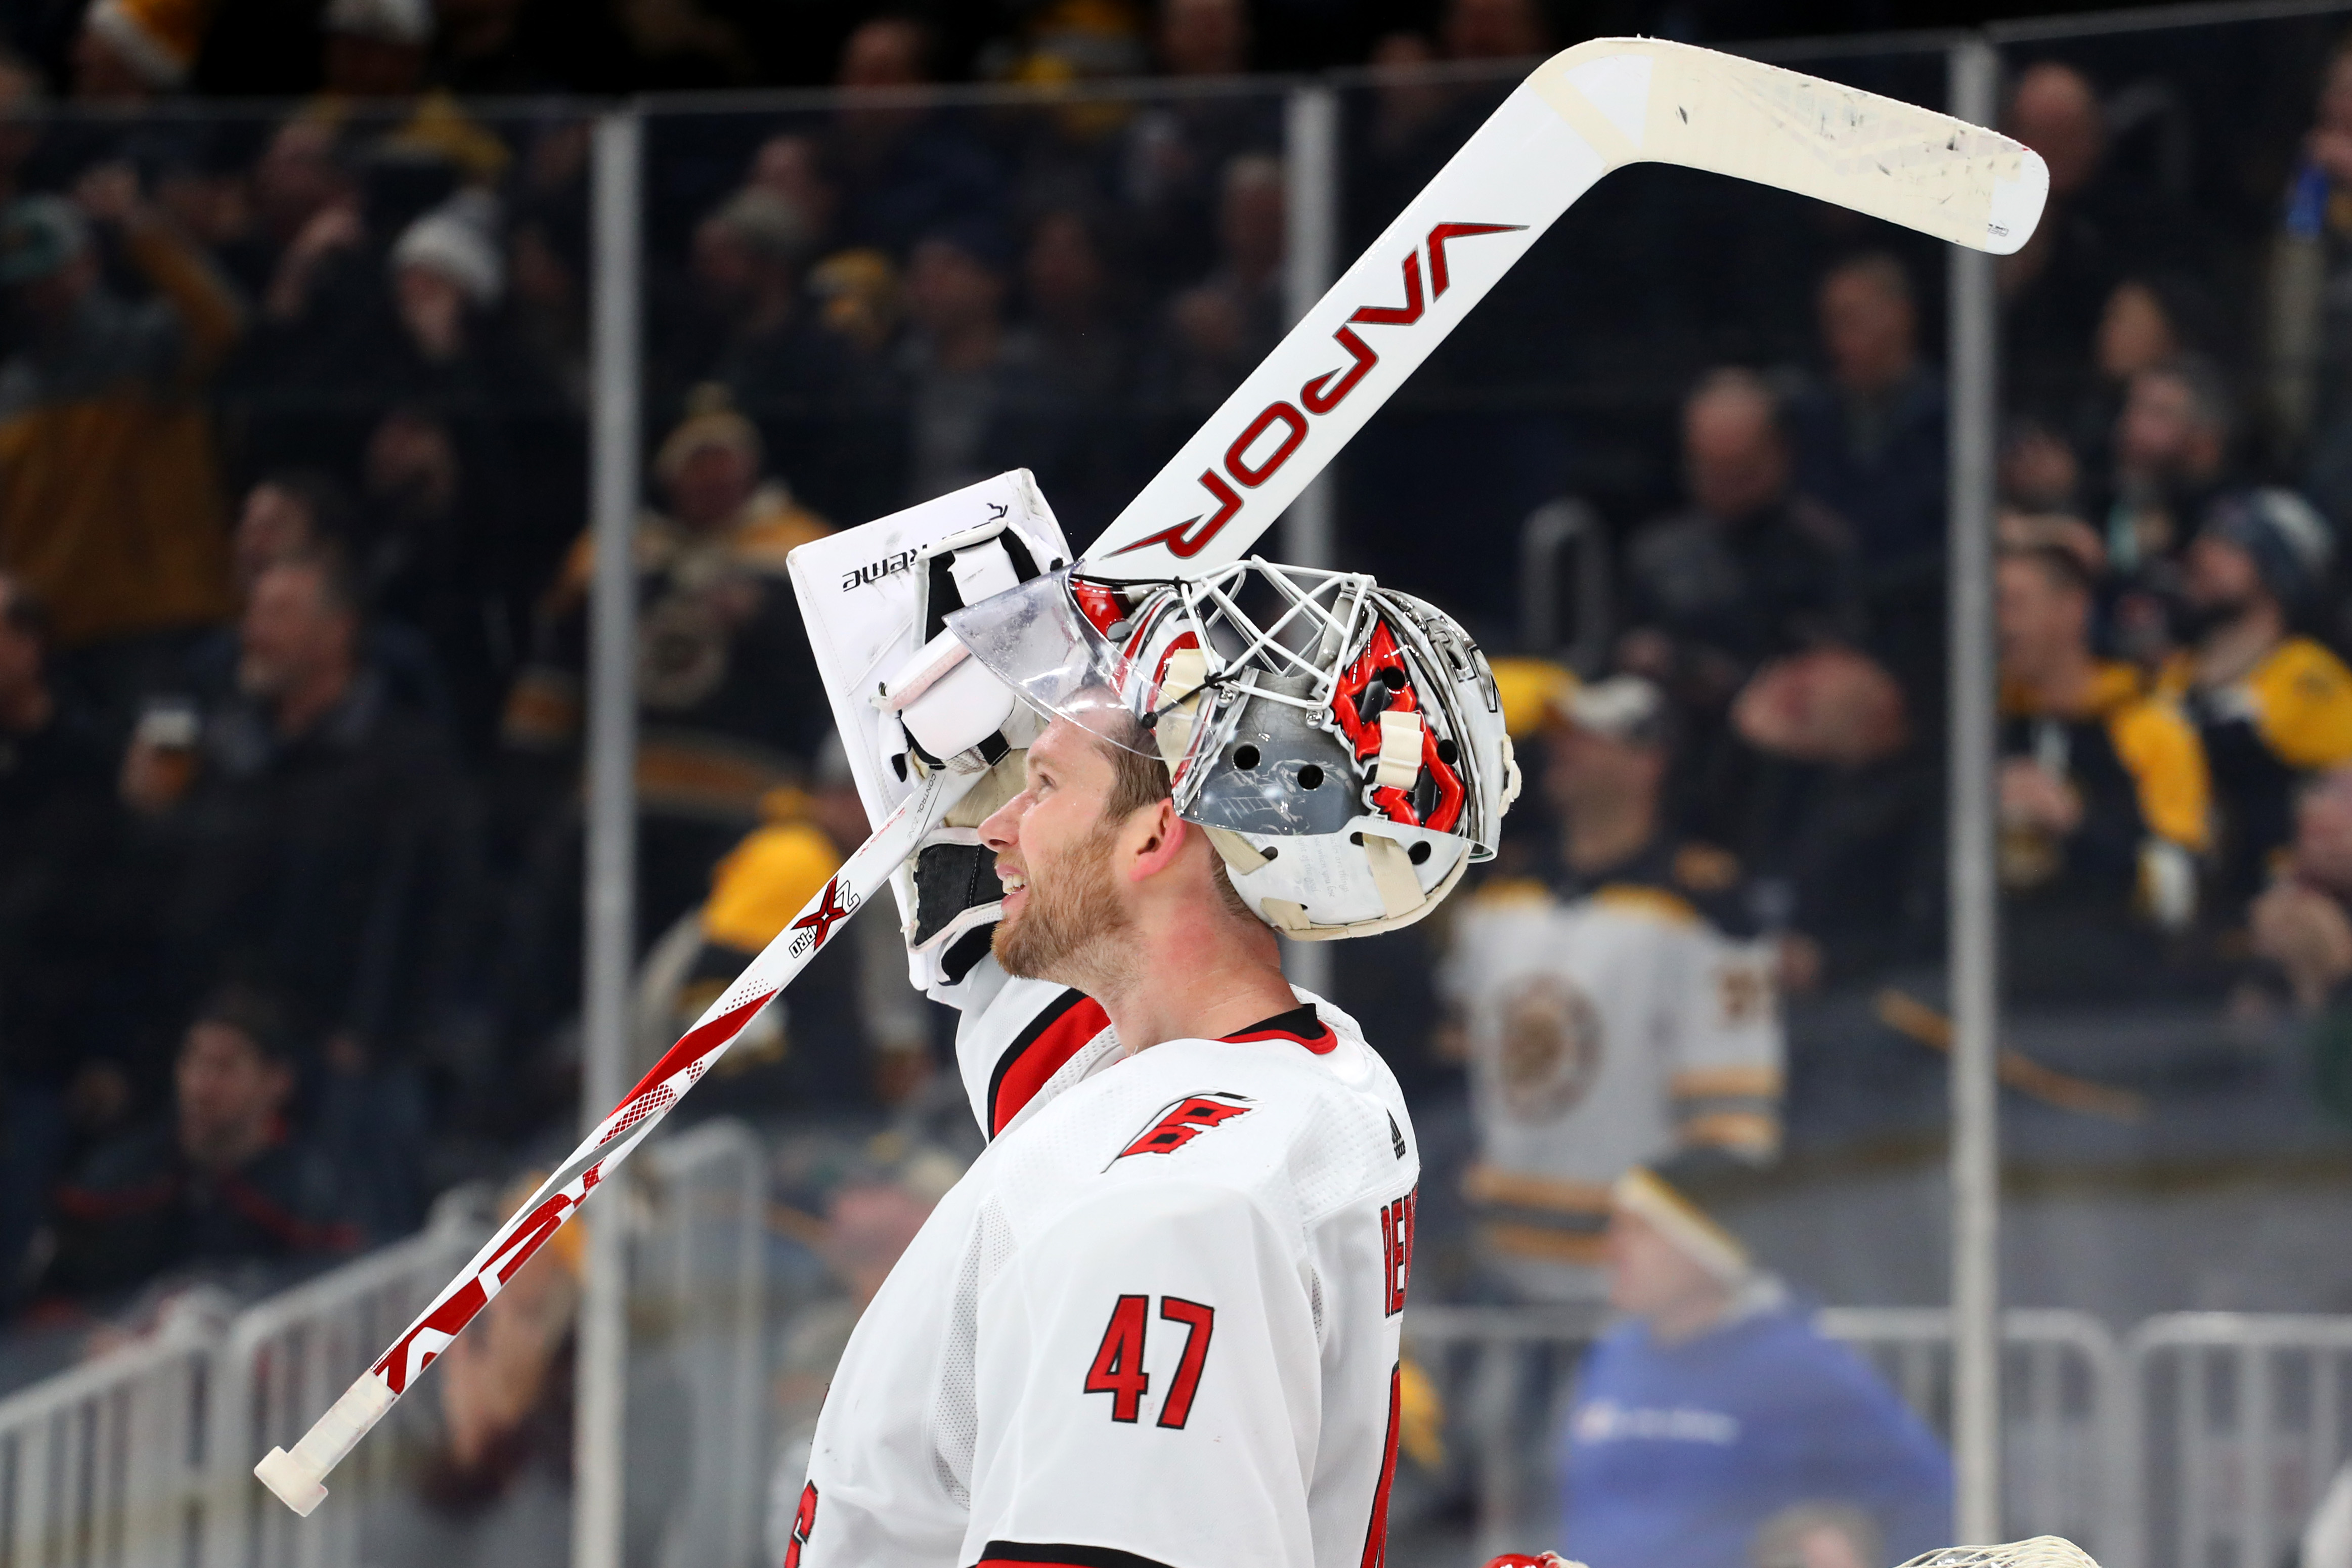 James Reimer #47 of the Carolina Hurricanes reacts after Charlie Coyle #13 of the Boston Bruins scored a goal during the third period at TD Garden on December 03, 2019 in Boston, Massachusetts. The Bruins defeat the Hurricanes 2-0.